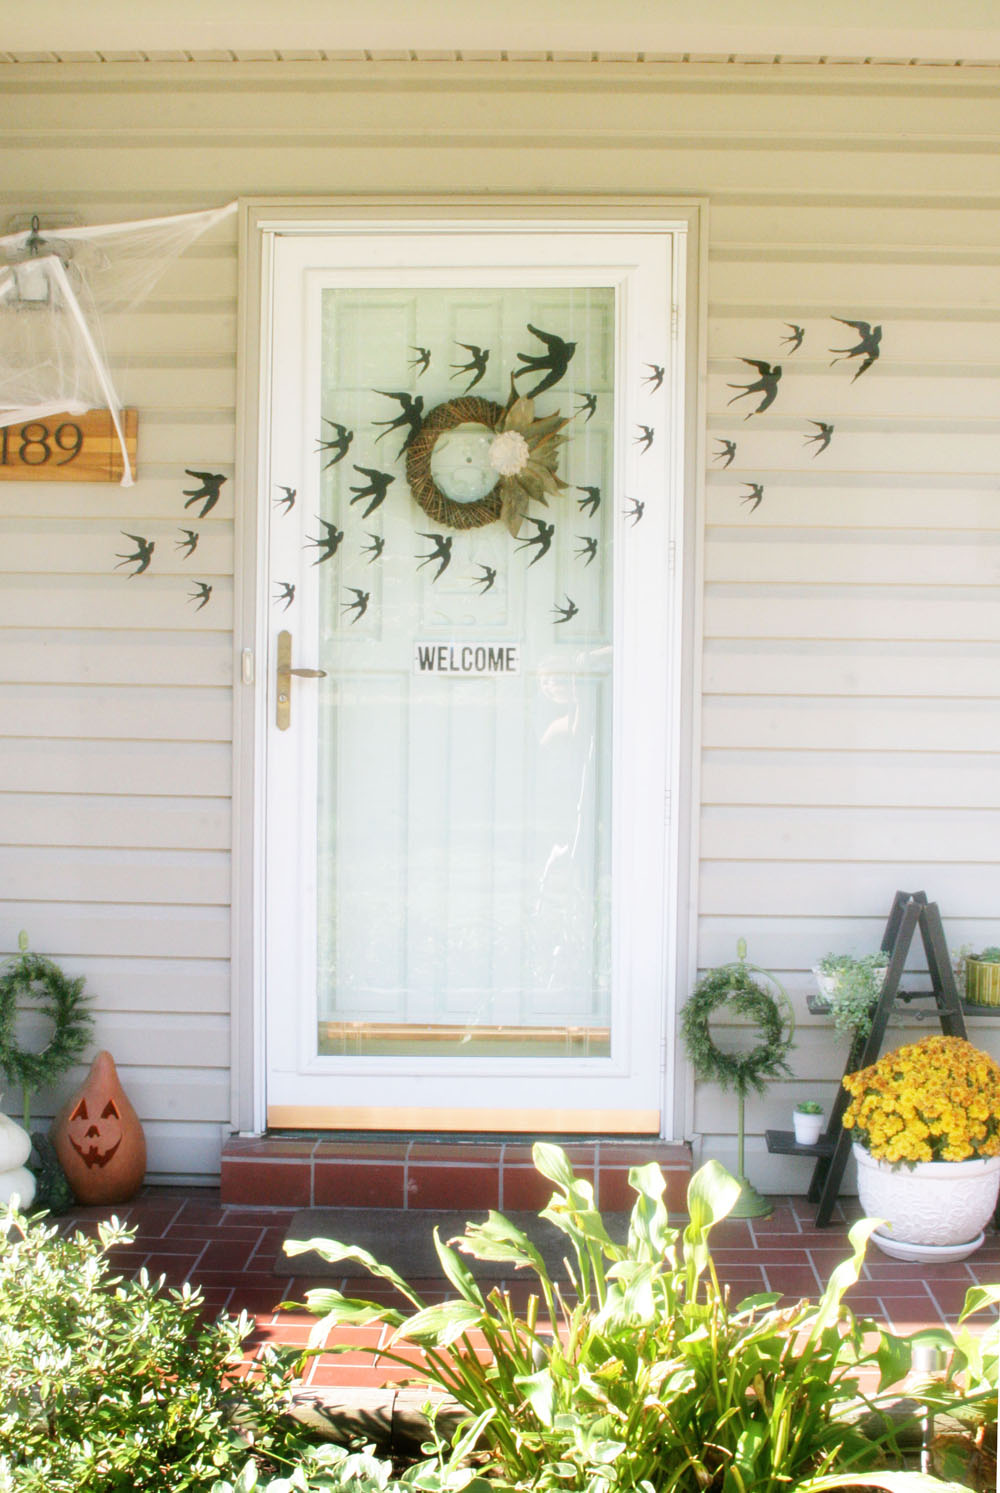 Spooky Halloween Decorations for Kids, Kid-Friendly Halloween Decoration Ideas, Raven Halloween Ideas, Black Crow Halloween Ideas, Front Door Halloween Decoations, by @CraftivityD